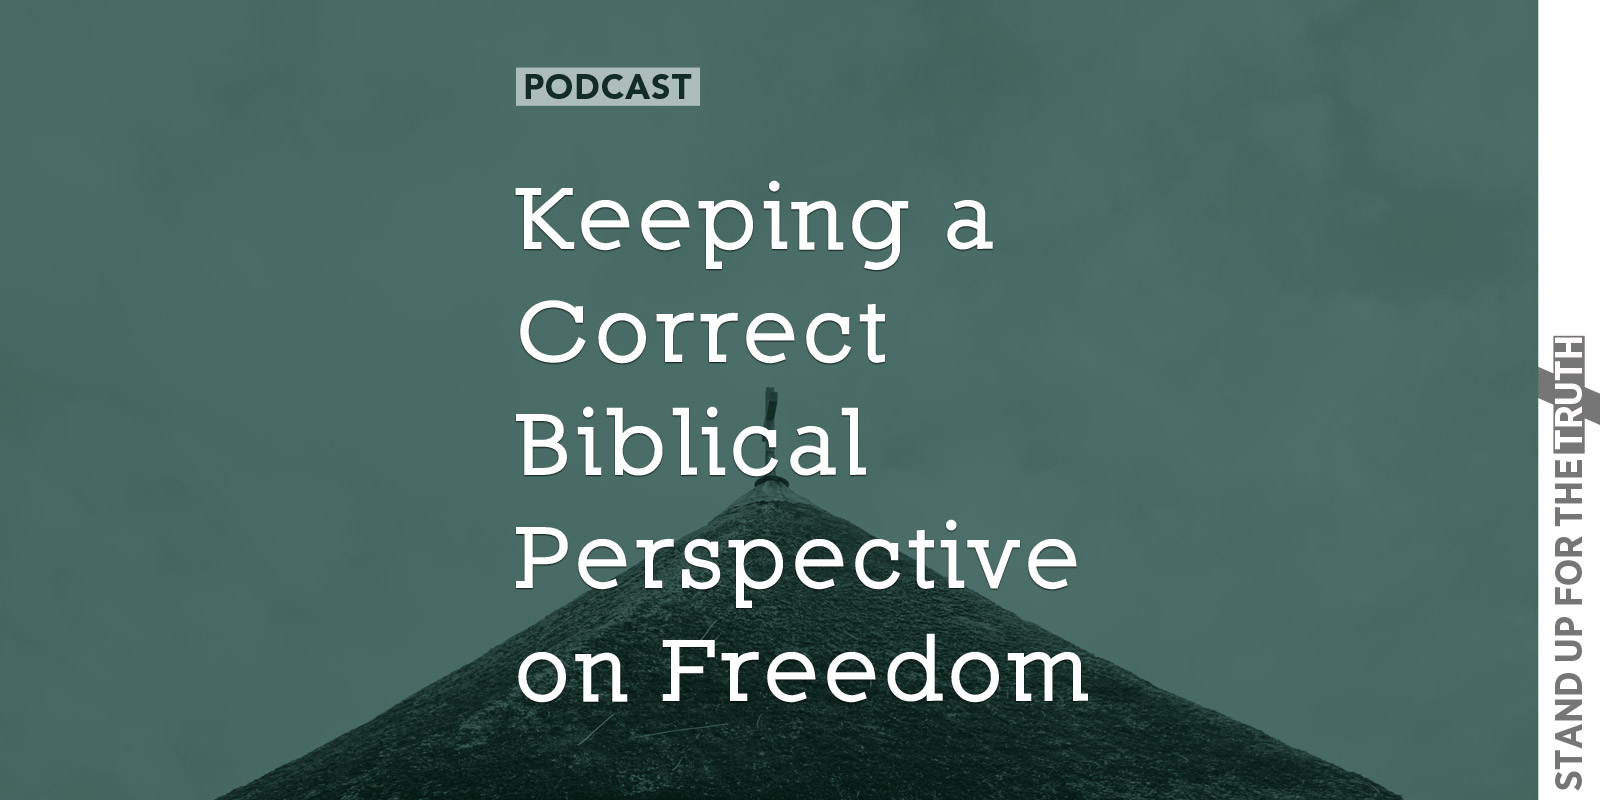 Keeping a Correct Biblical Perspective on Freedom